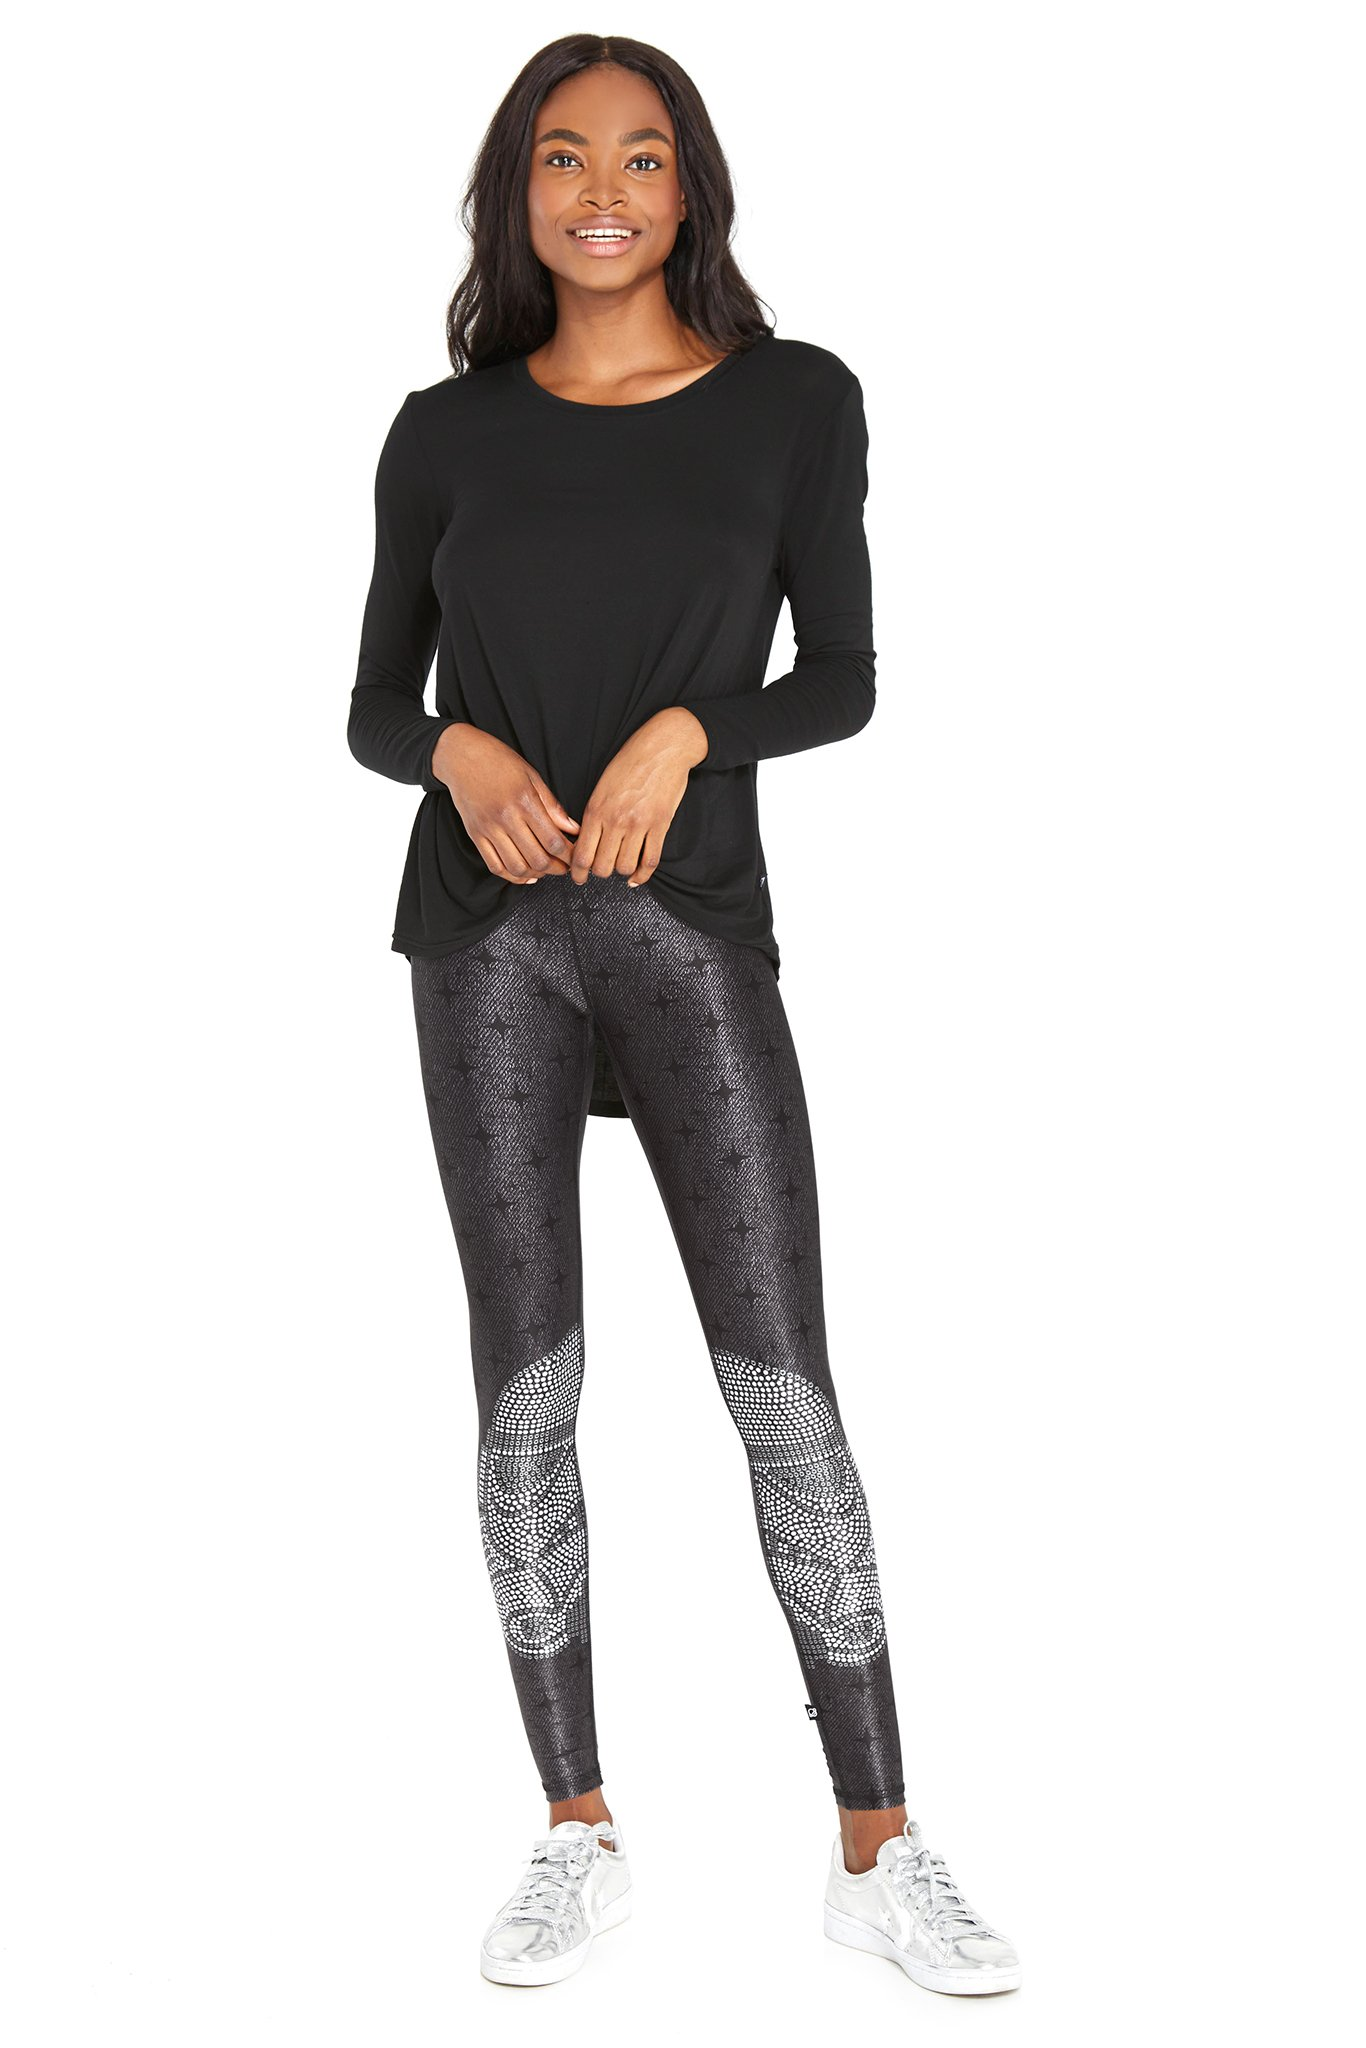 Women's Terez x Star Wars Crystal Trooper Tall Band Leggings